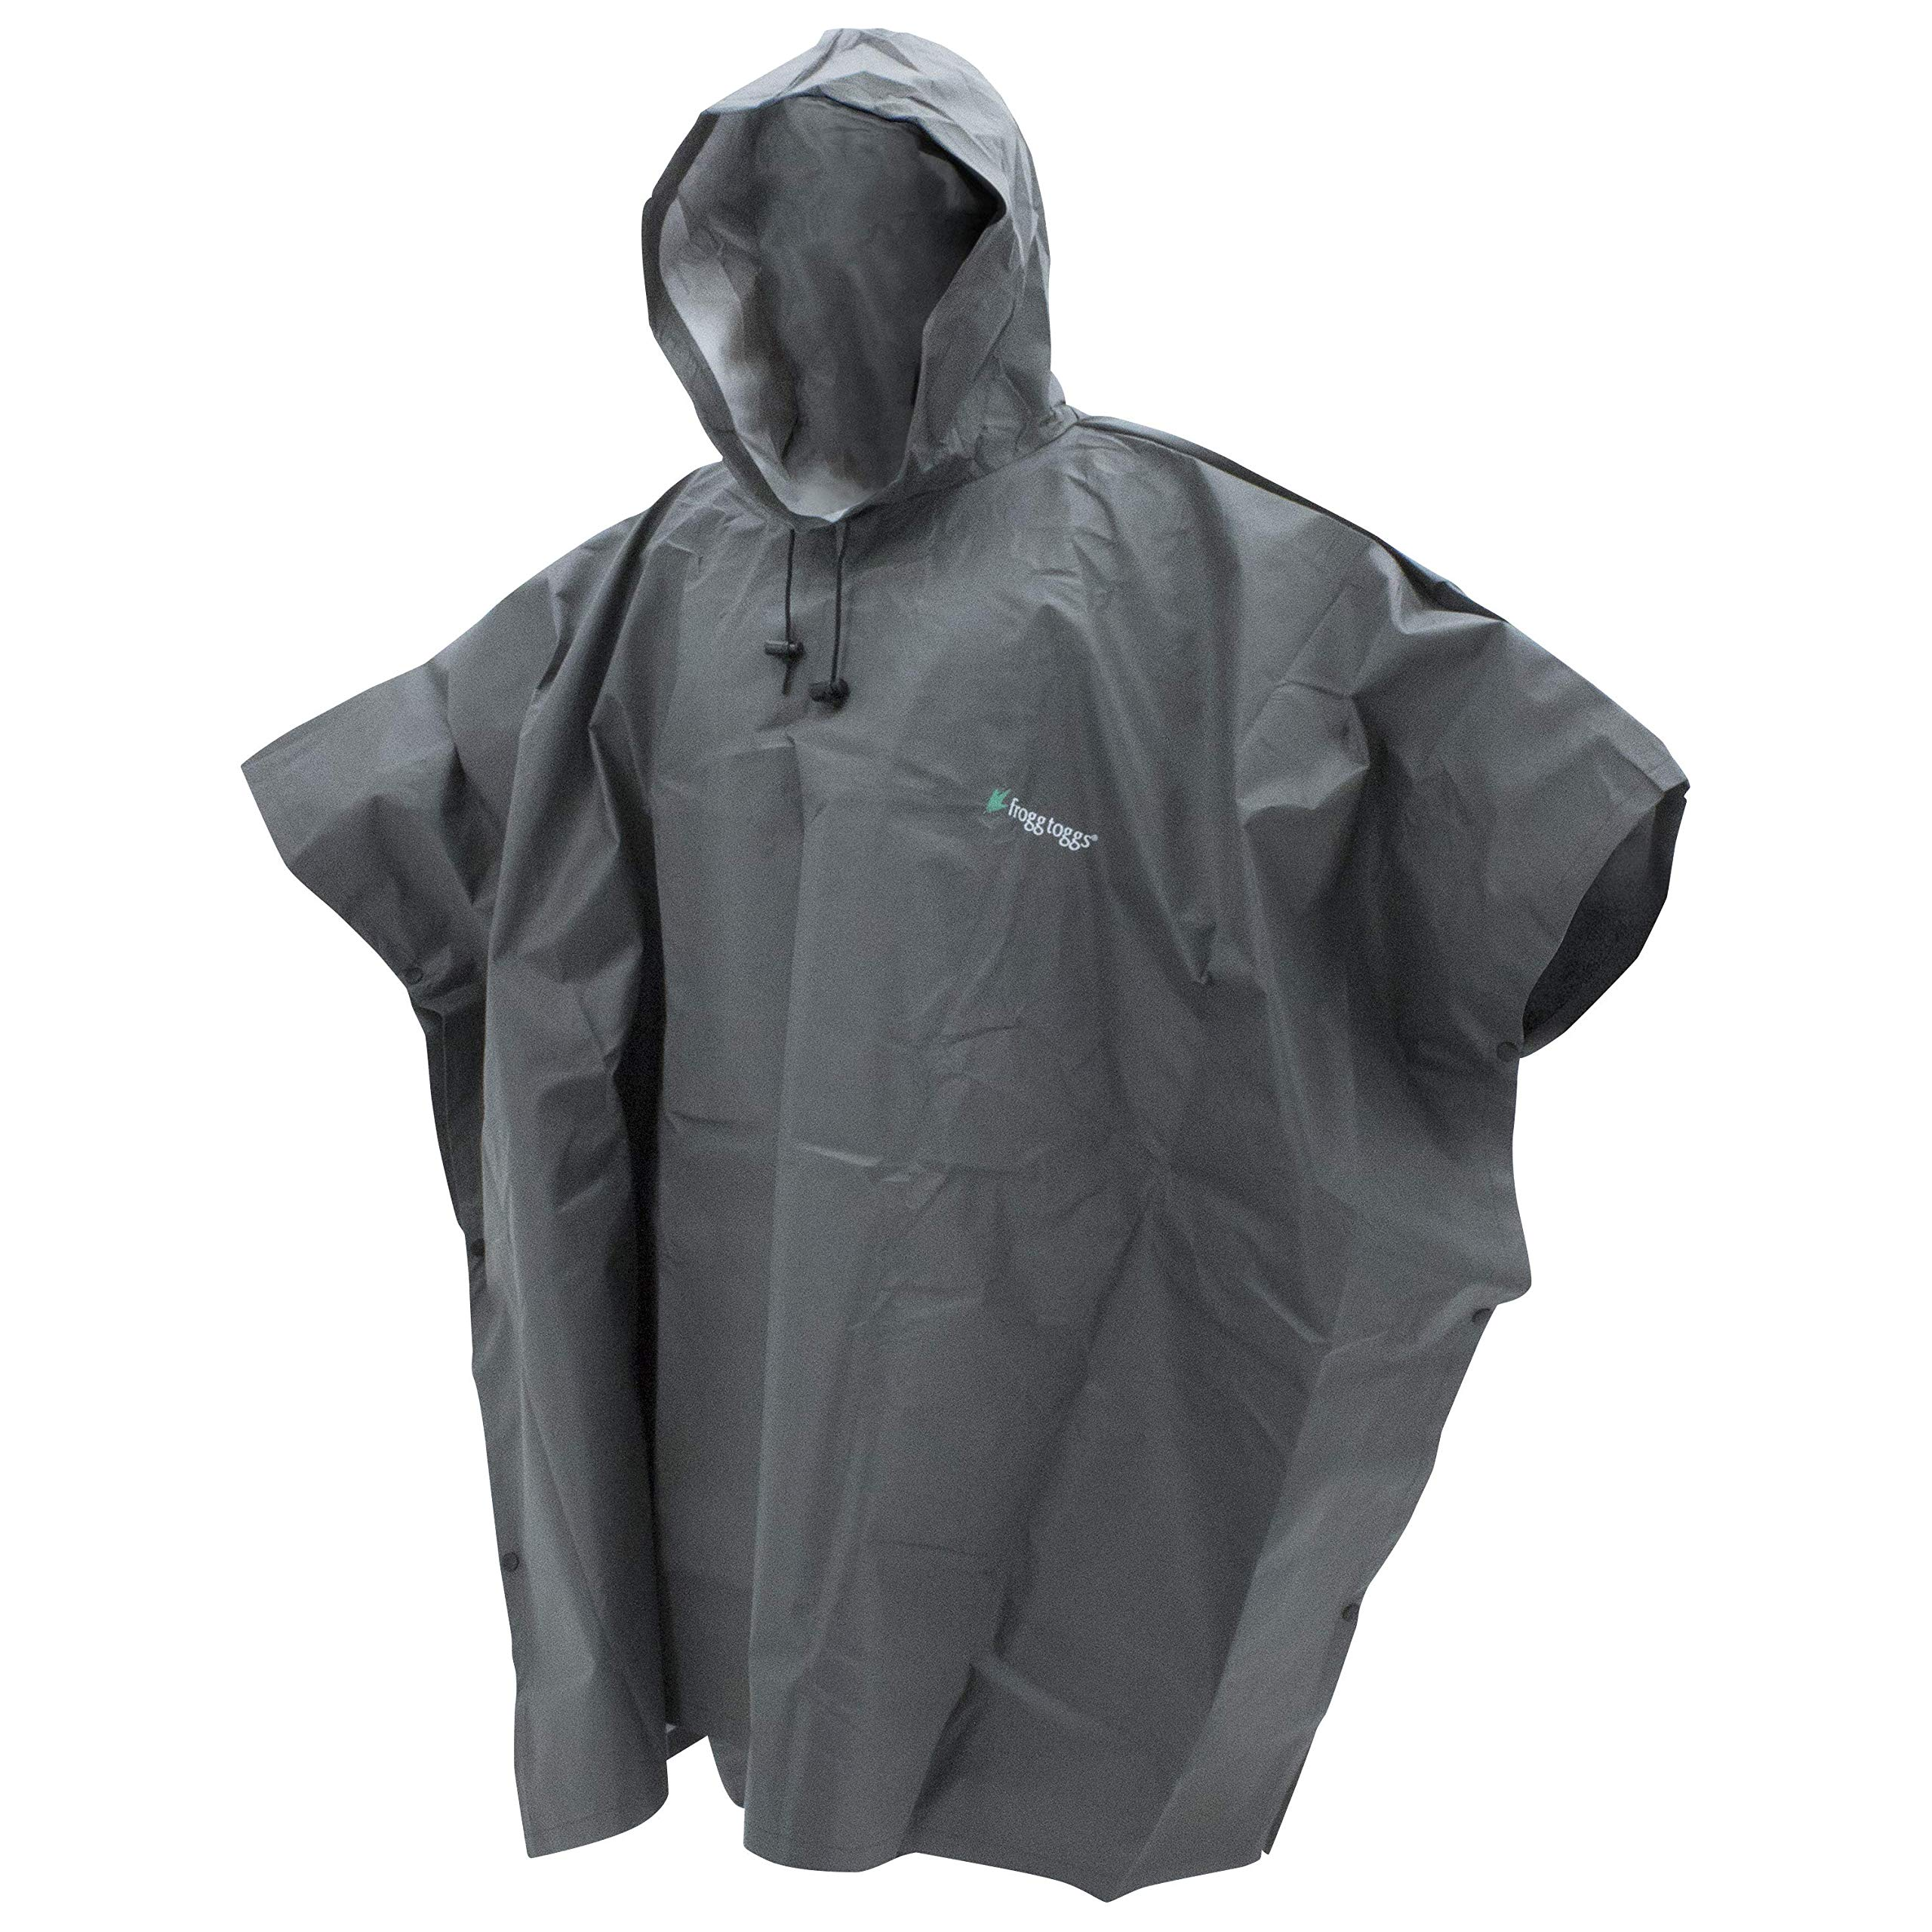 Frogg Toggs Ultra-Lite2 Waterproof Breathable Poncho by Frogg Toggs